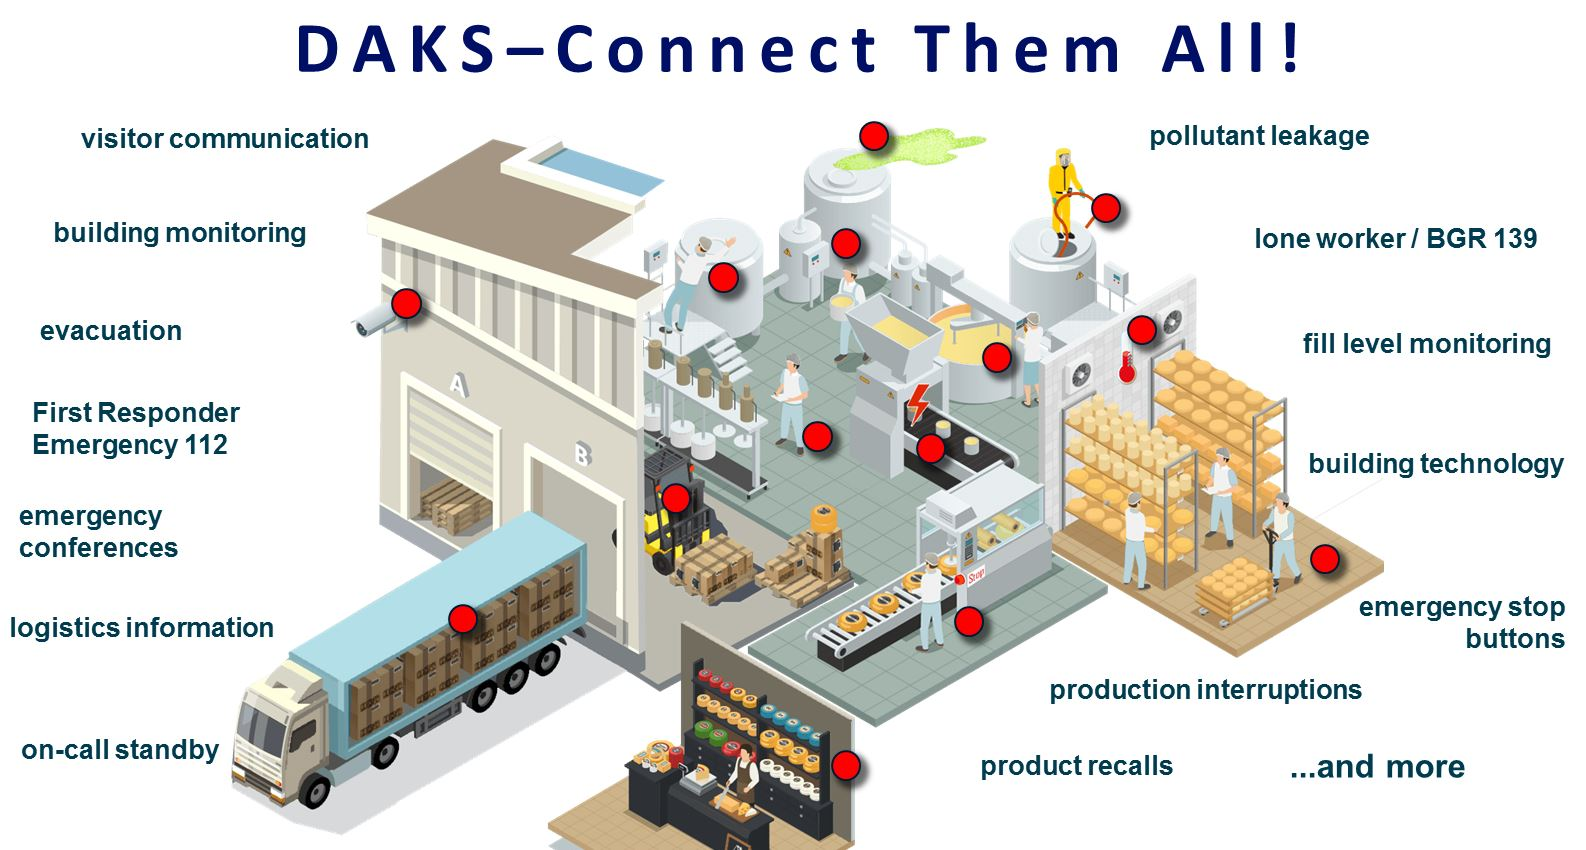 DAKS automates business and emergency processes